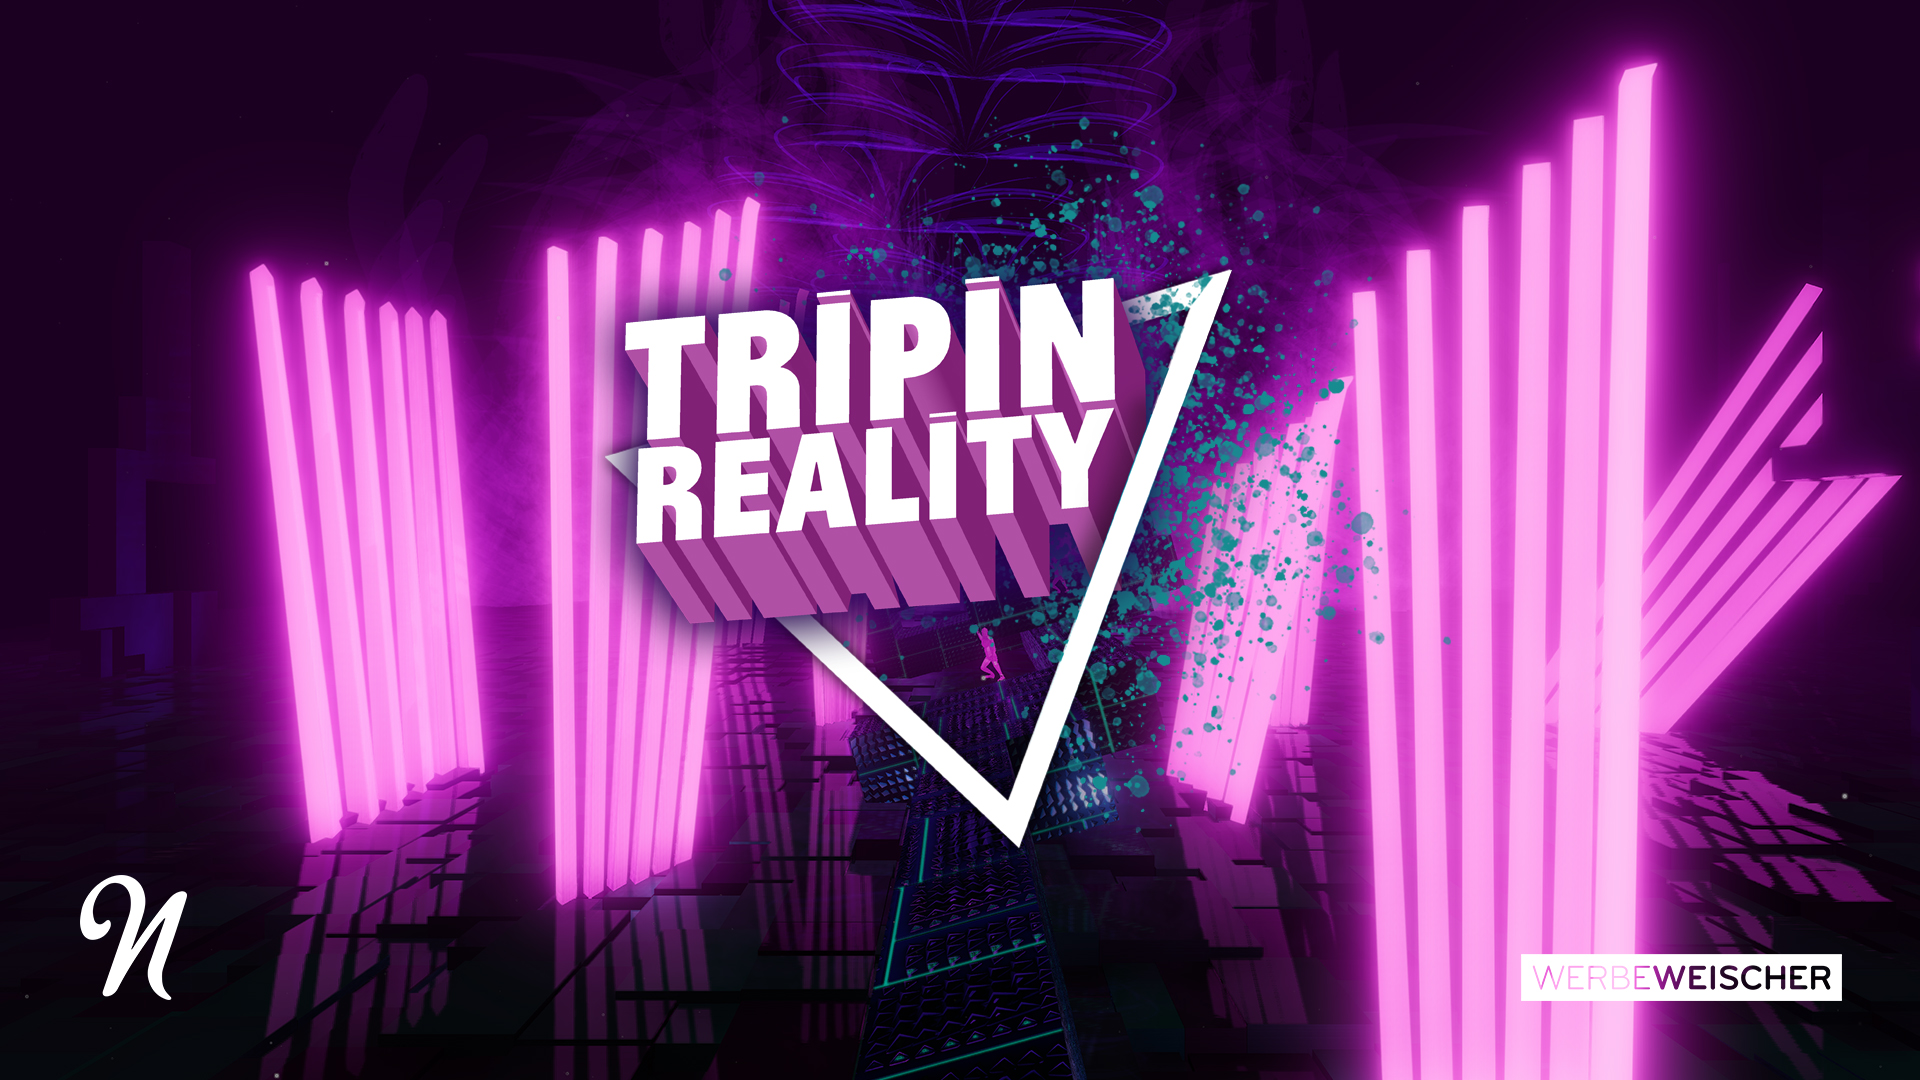 Tripin Reality: A Journey Through An Audio Reactive Landscape